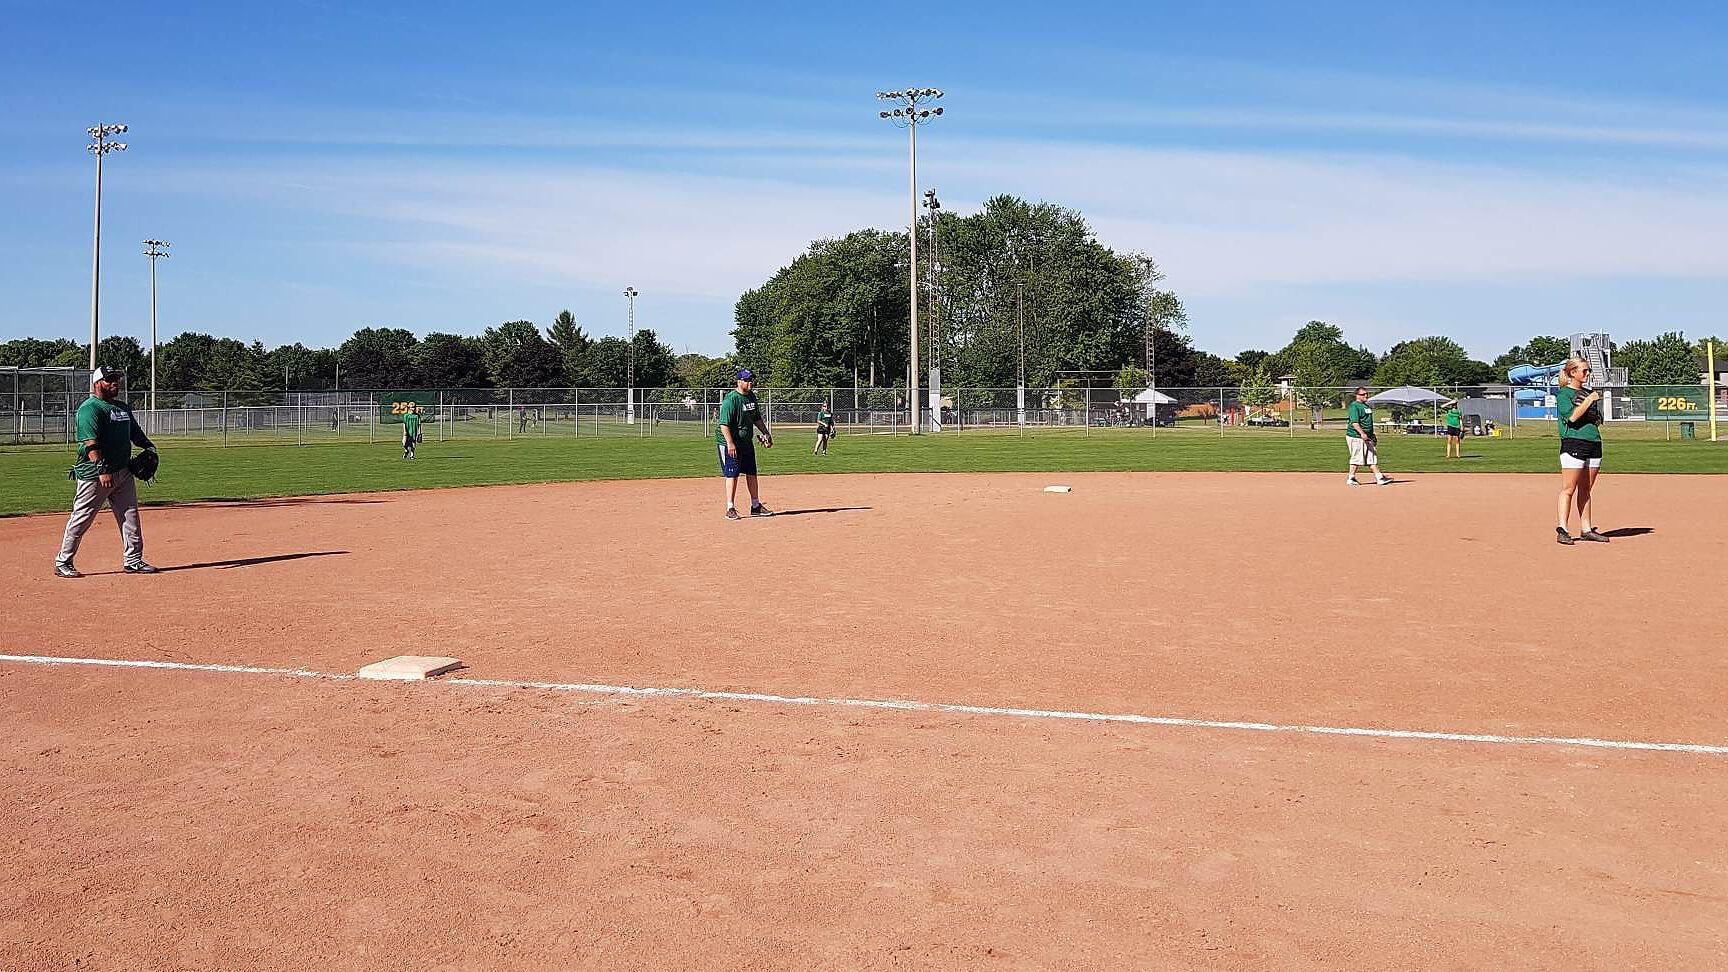 People on a baseball diamond